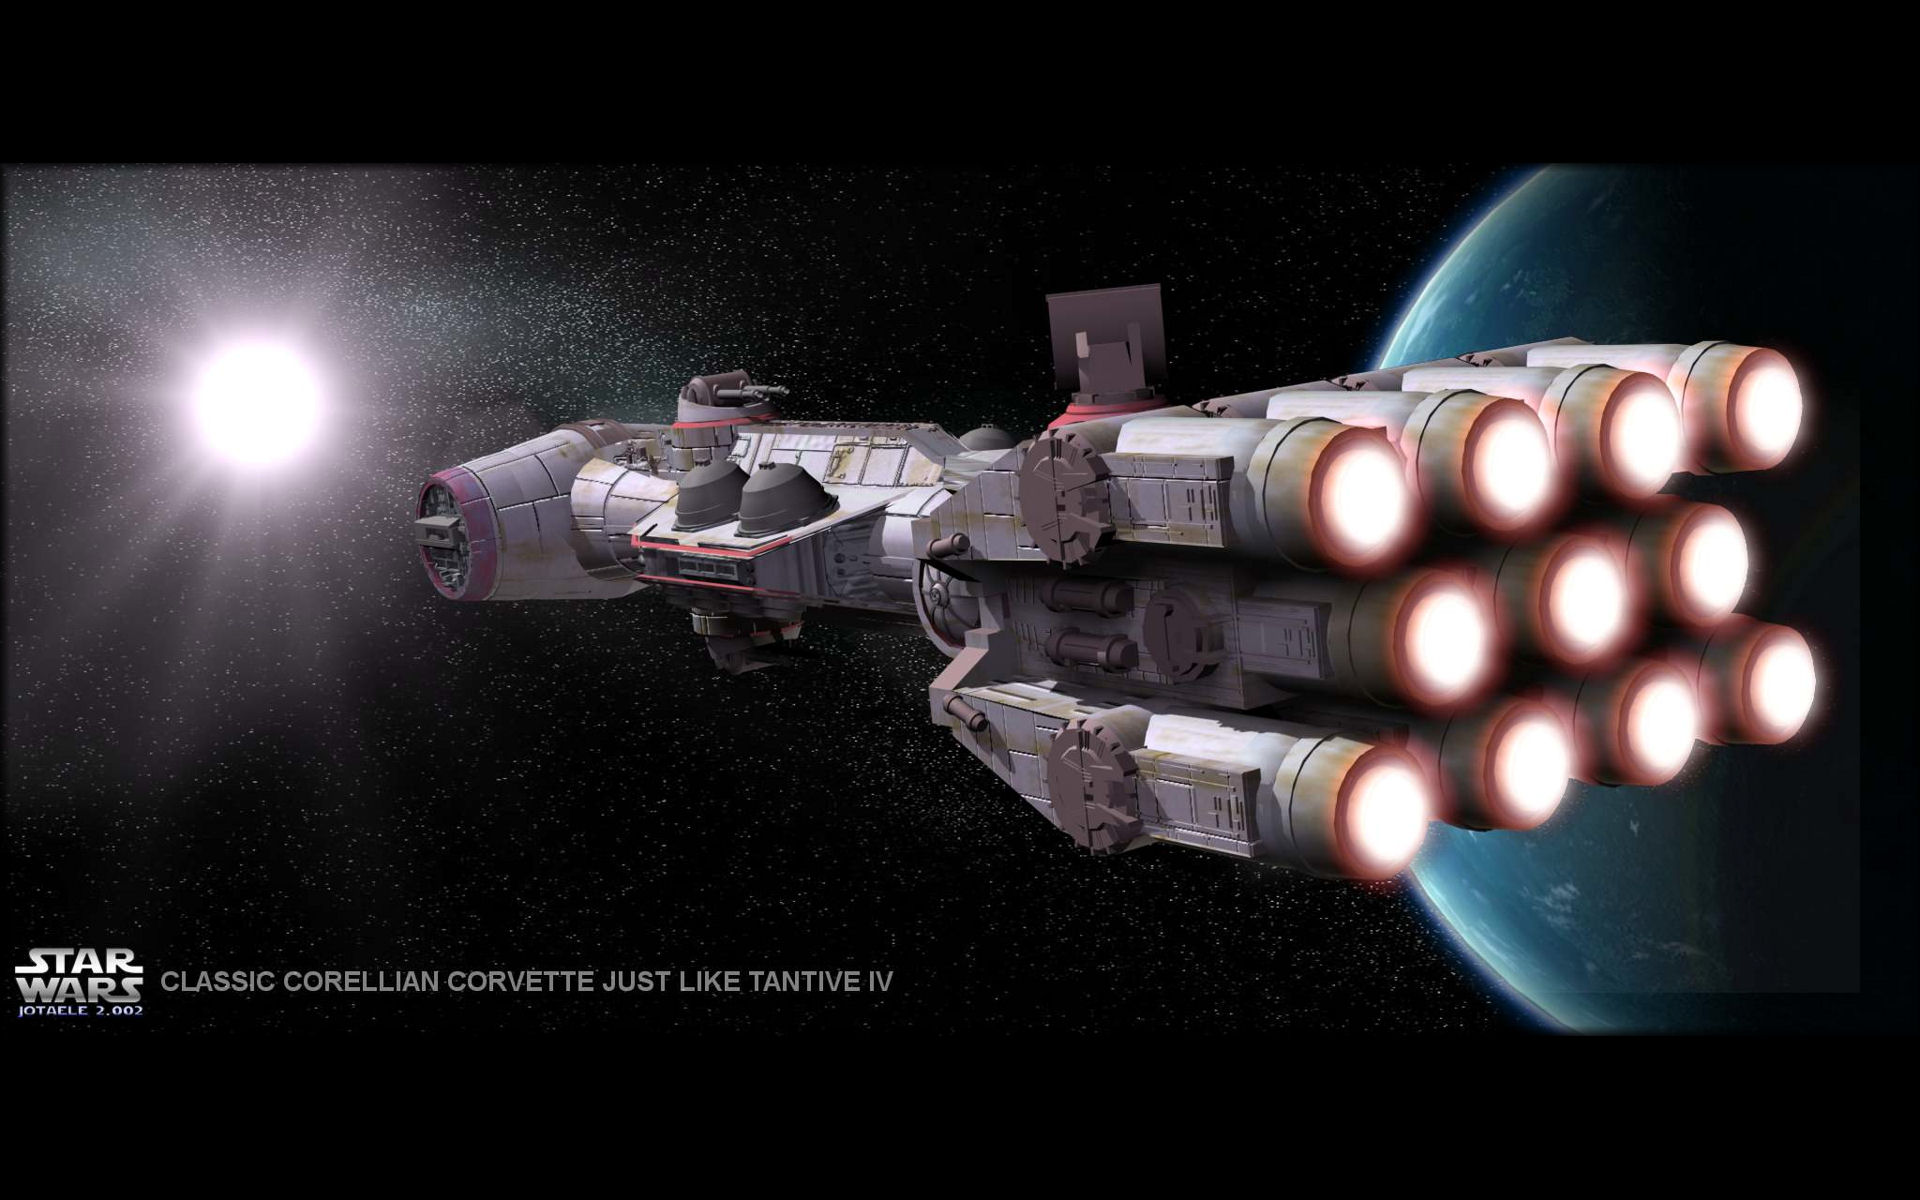 s star wars starship wallpapers - photo #9